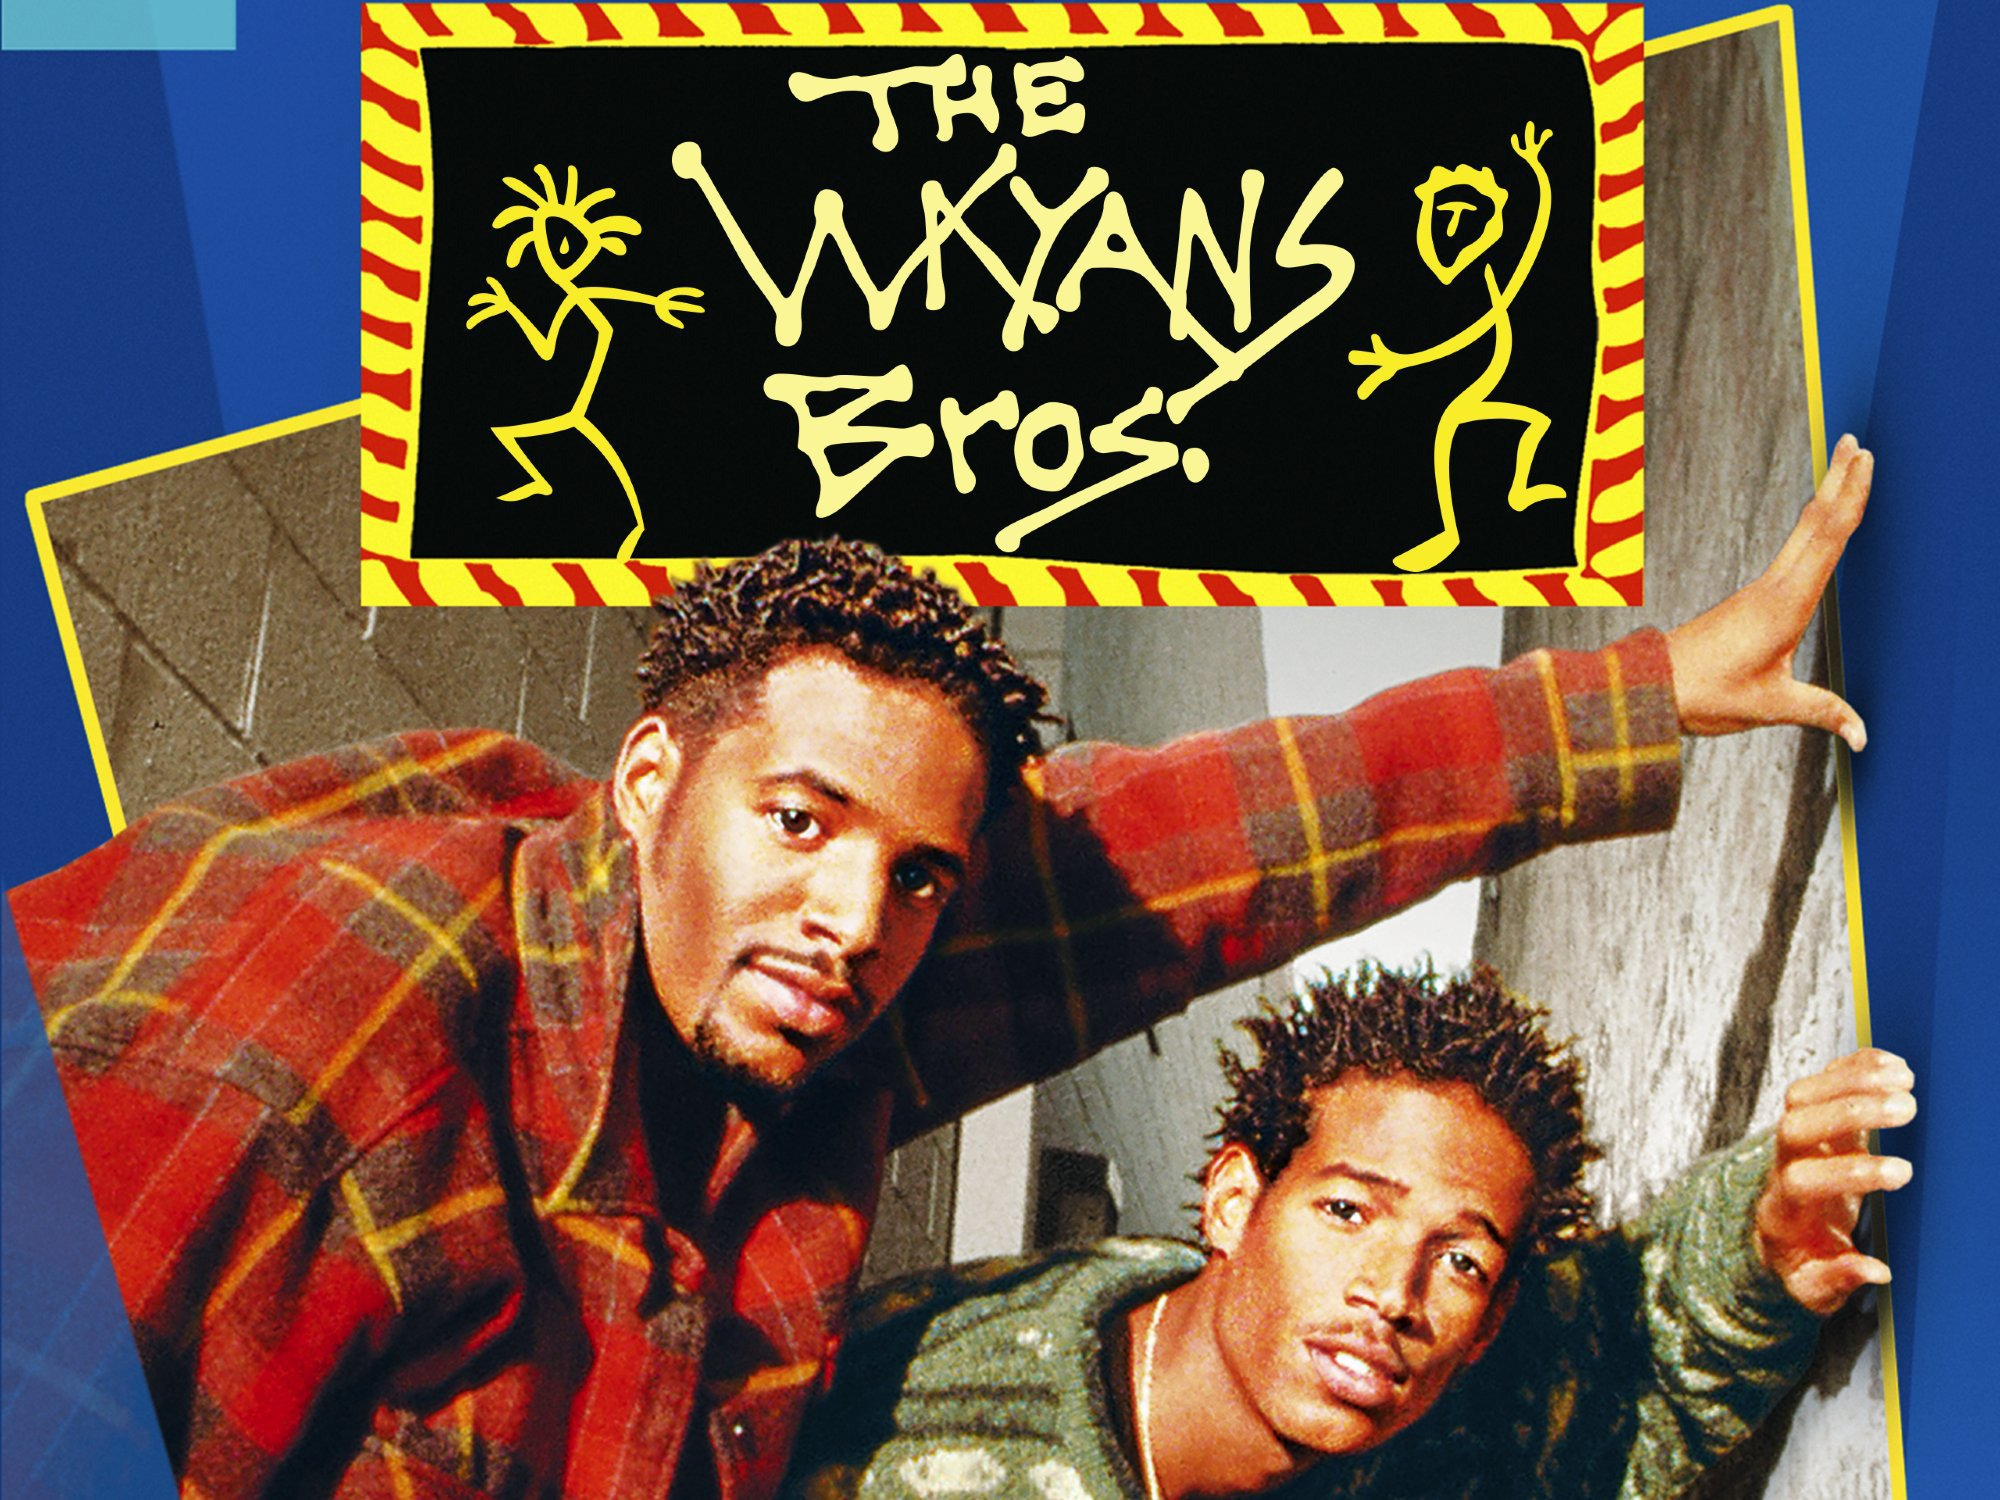 https://www.amazon.com/Wayans-Bros-Complete-First-Season/dp/B00PQAG0FS